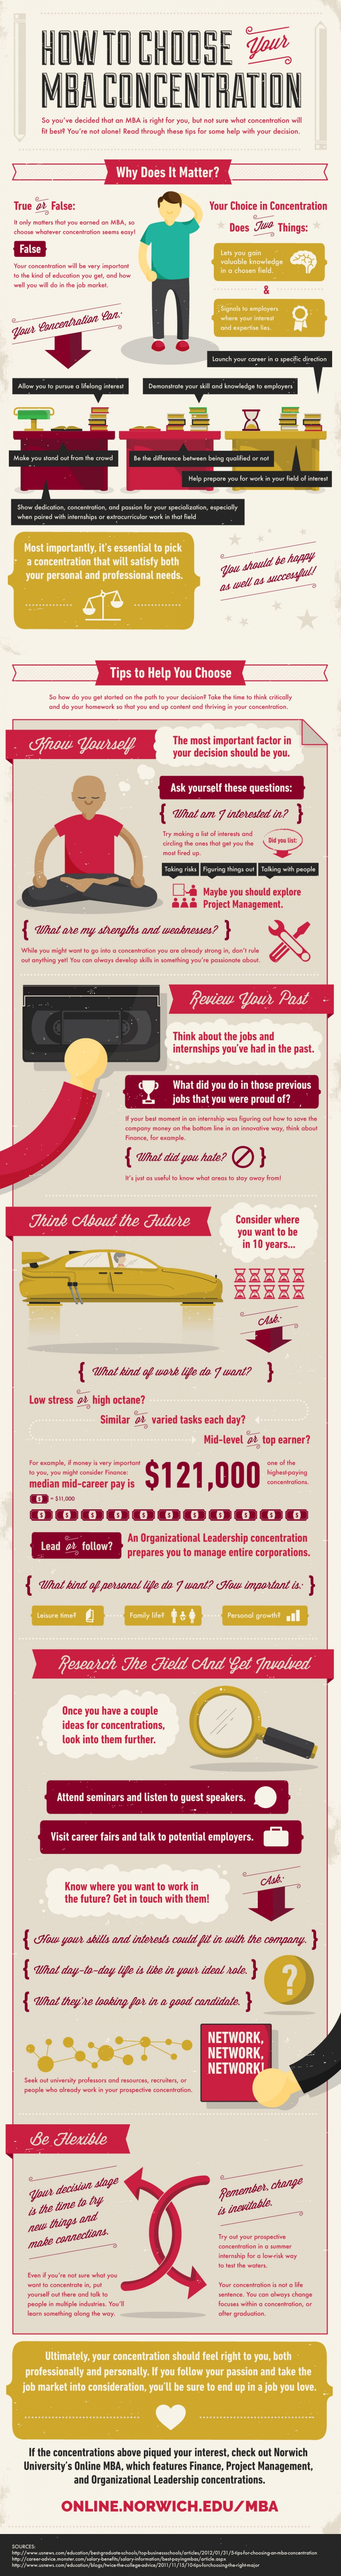 choosing an MBA concentration infographic image